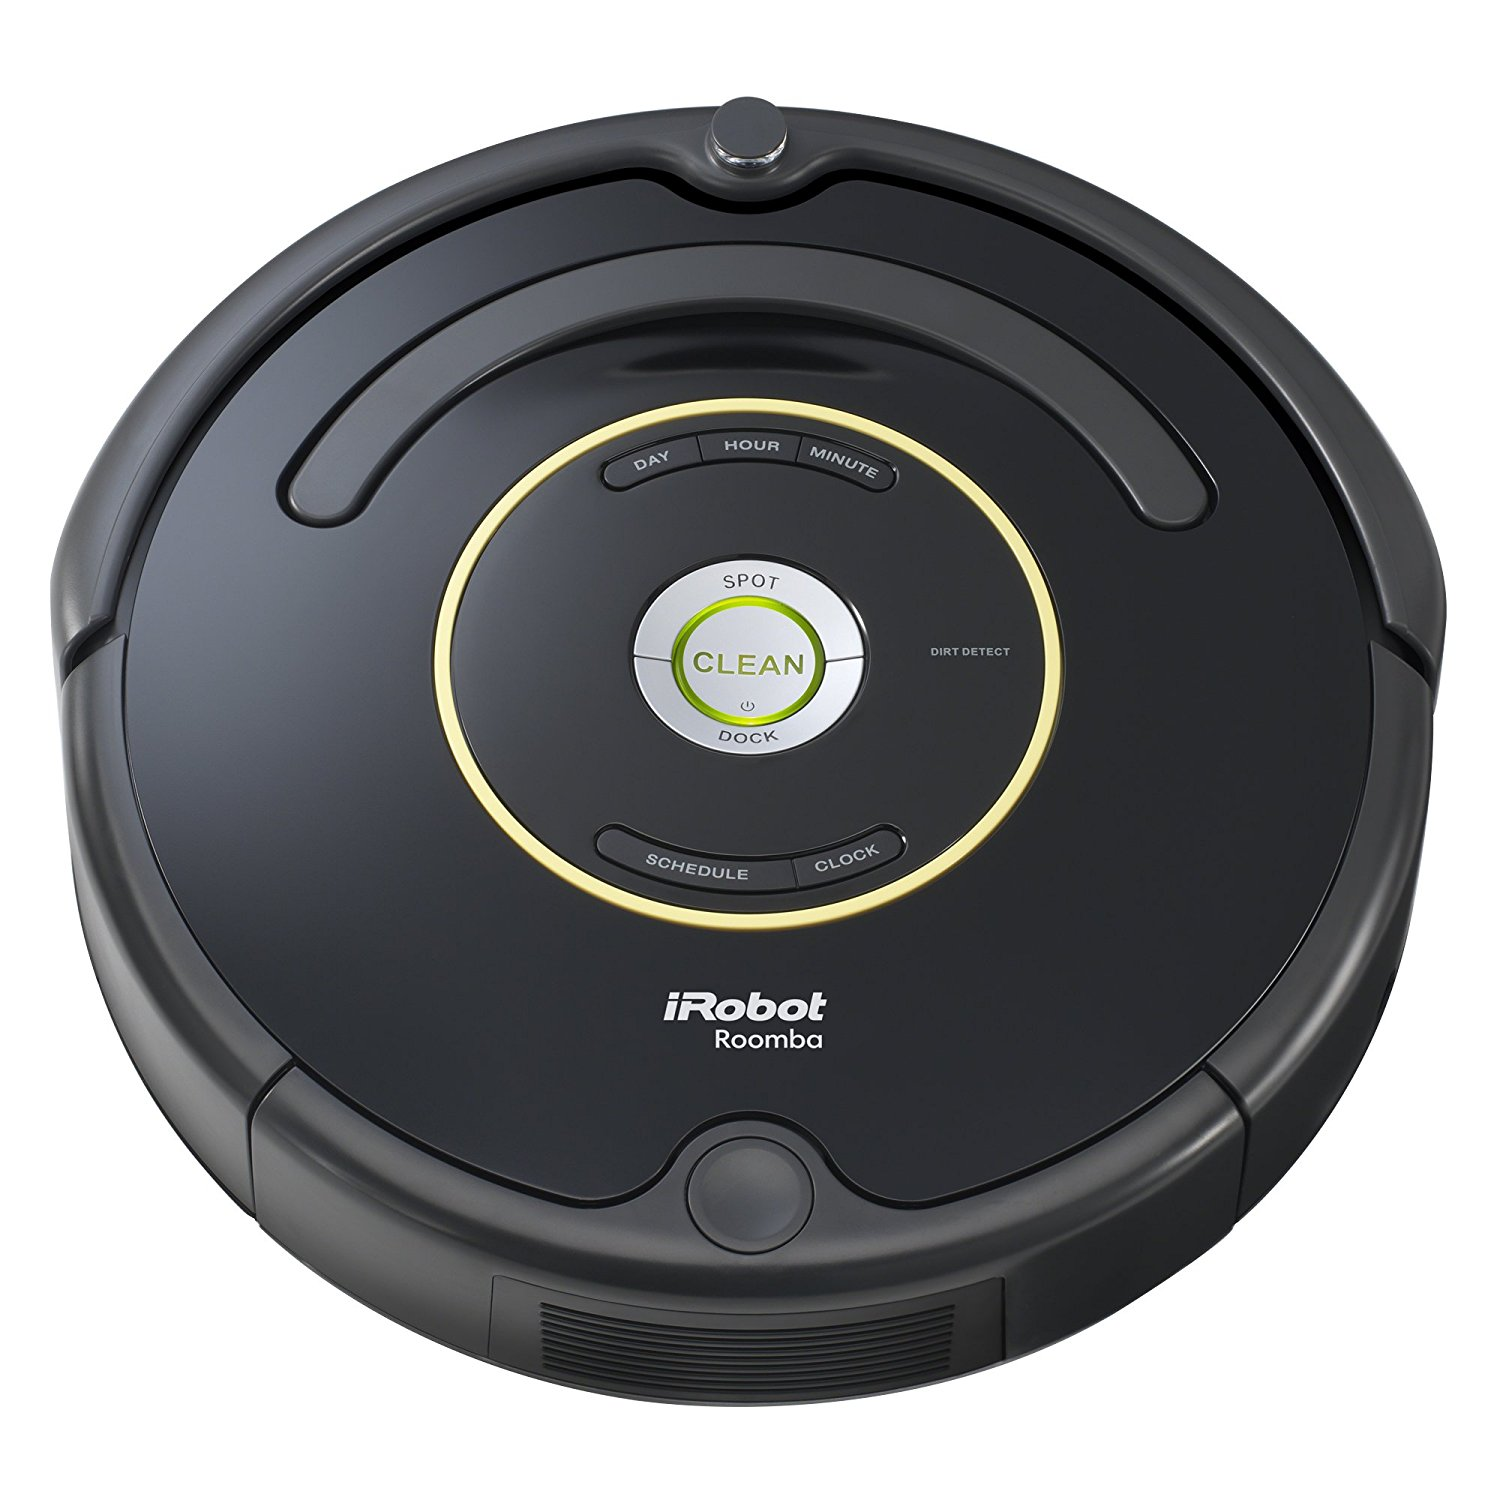 Best Robot Vacuum 5 best robot vacuum for carpet – guide and reviews